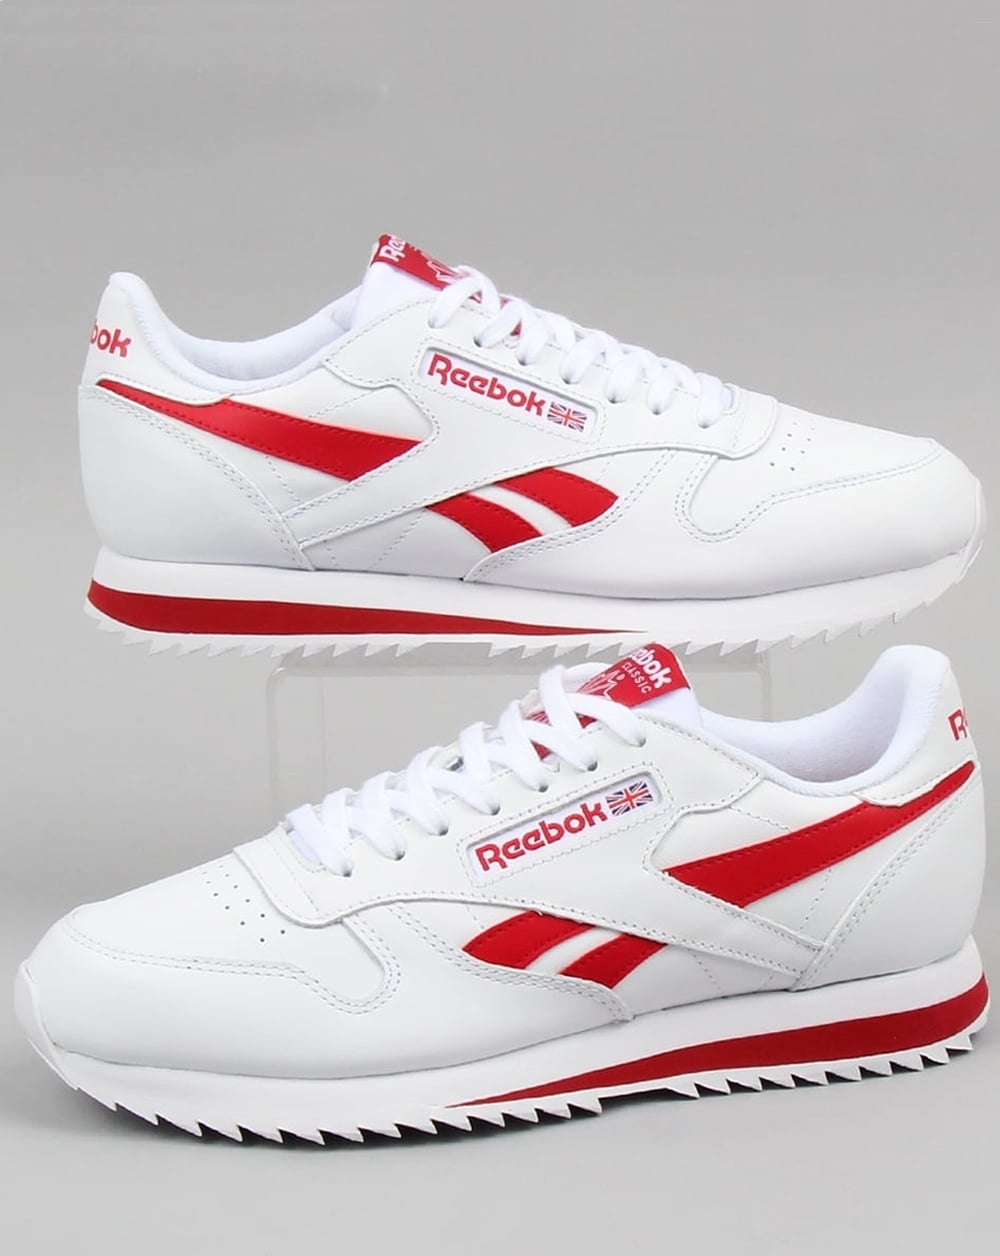 red and white reebok sneakers